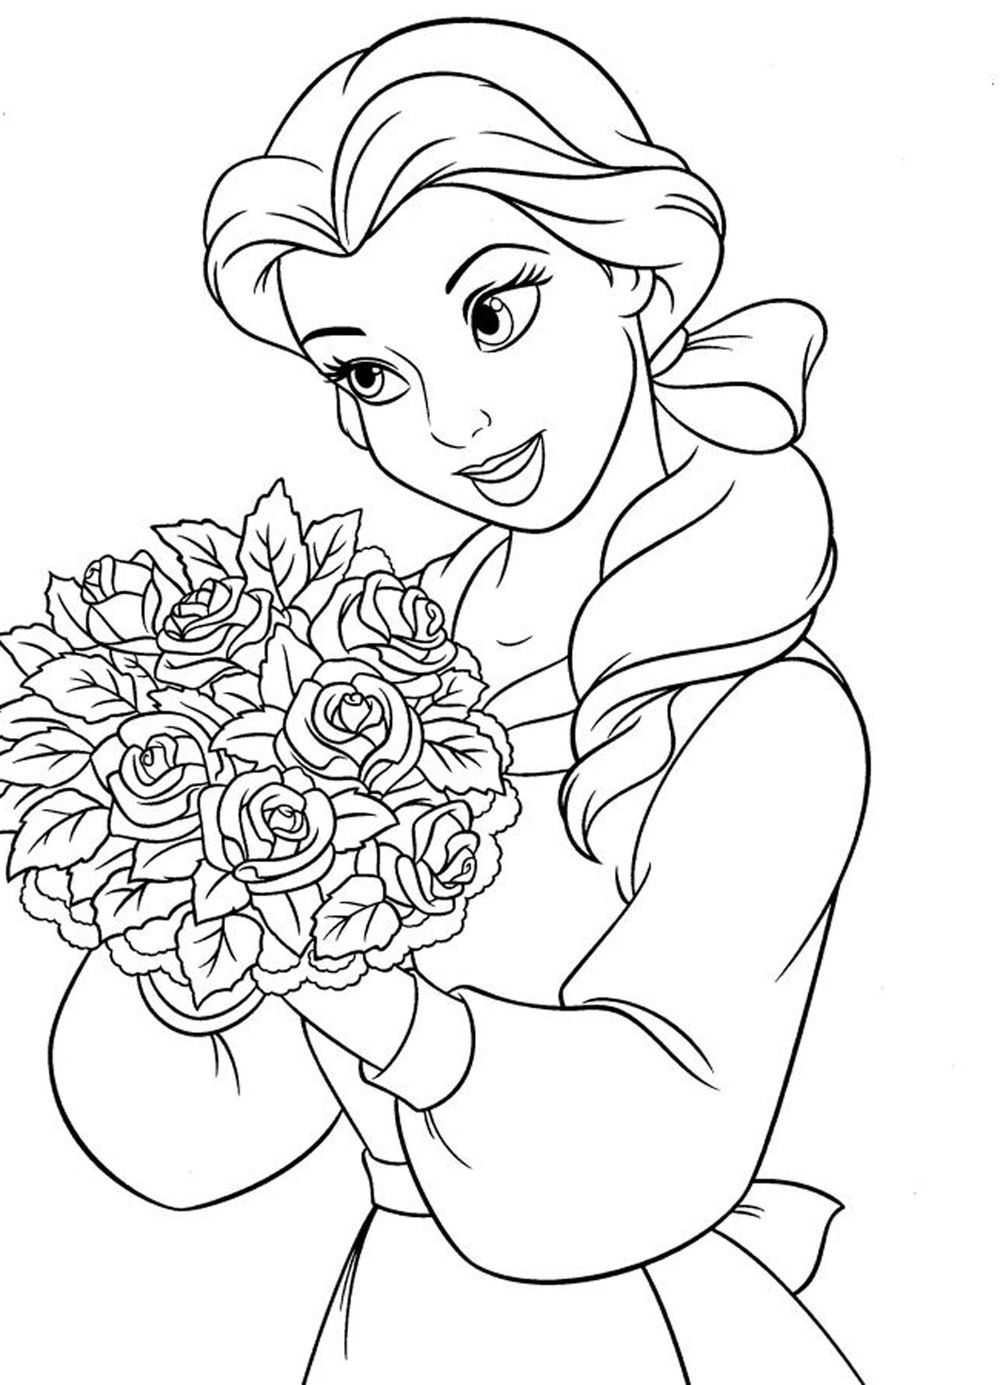 Disney Princess Coloring Book Disney Princess Coloring Pages Belle Coloring Pages Princess Coloring Pages